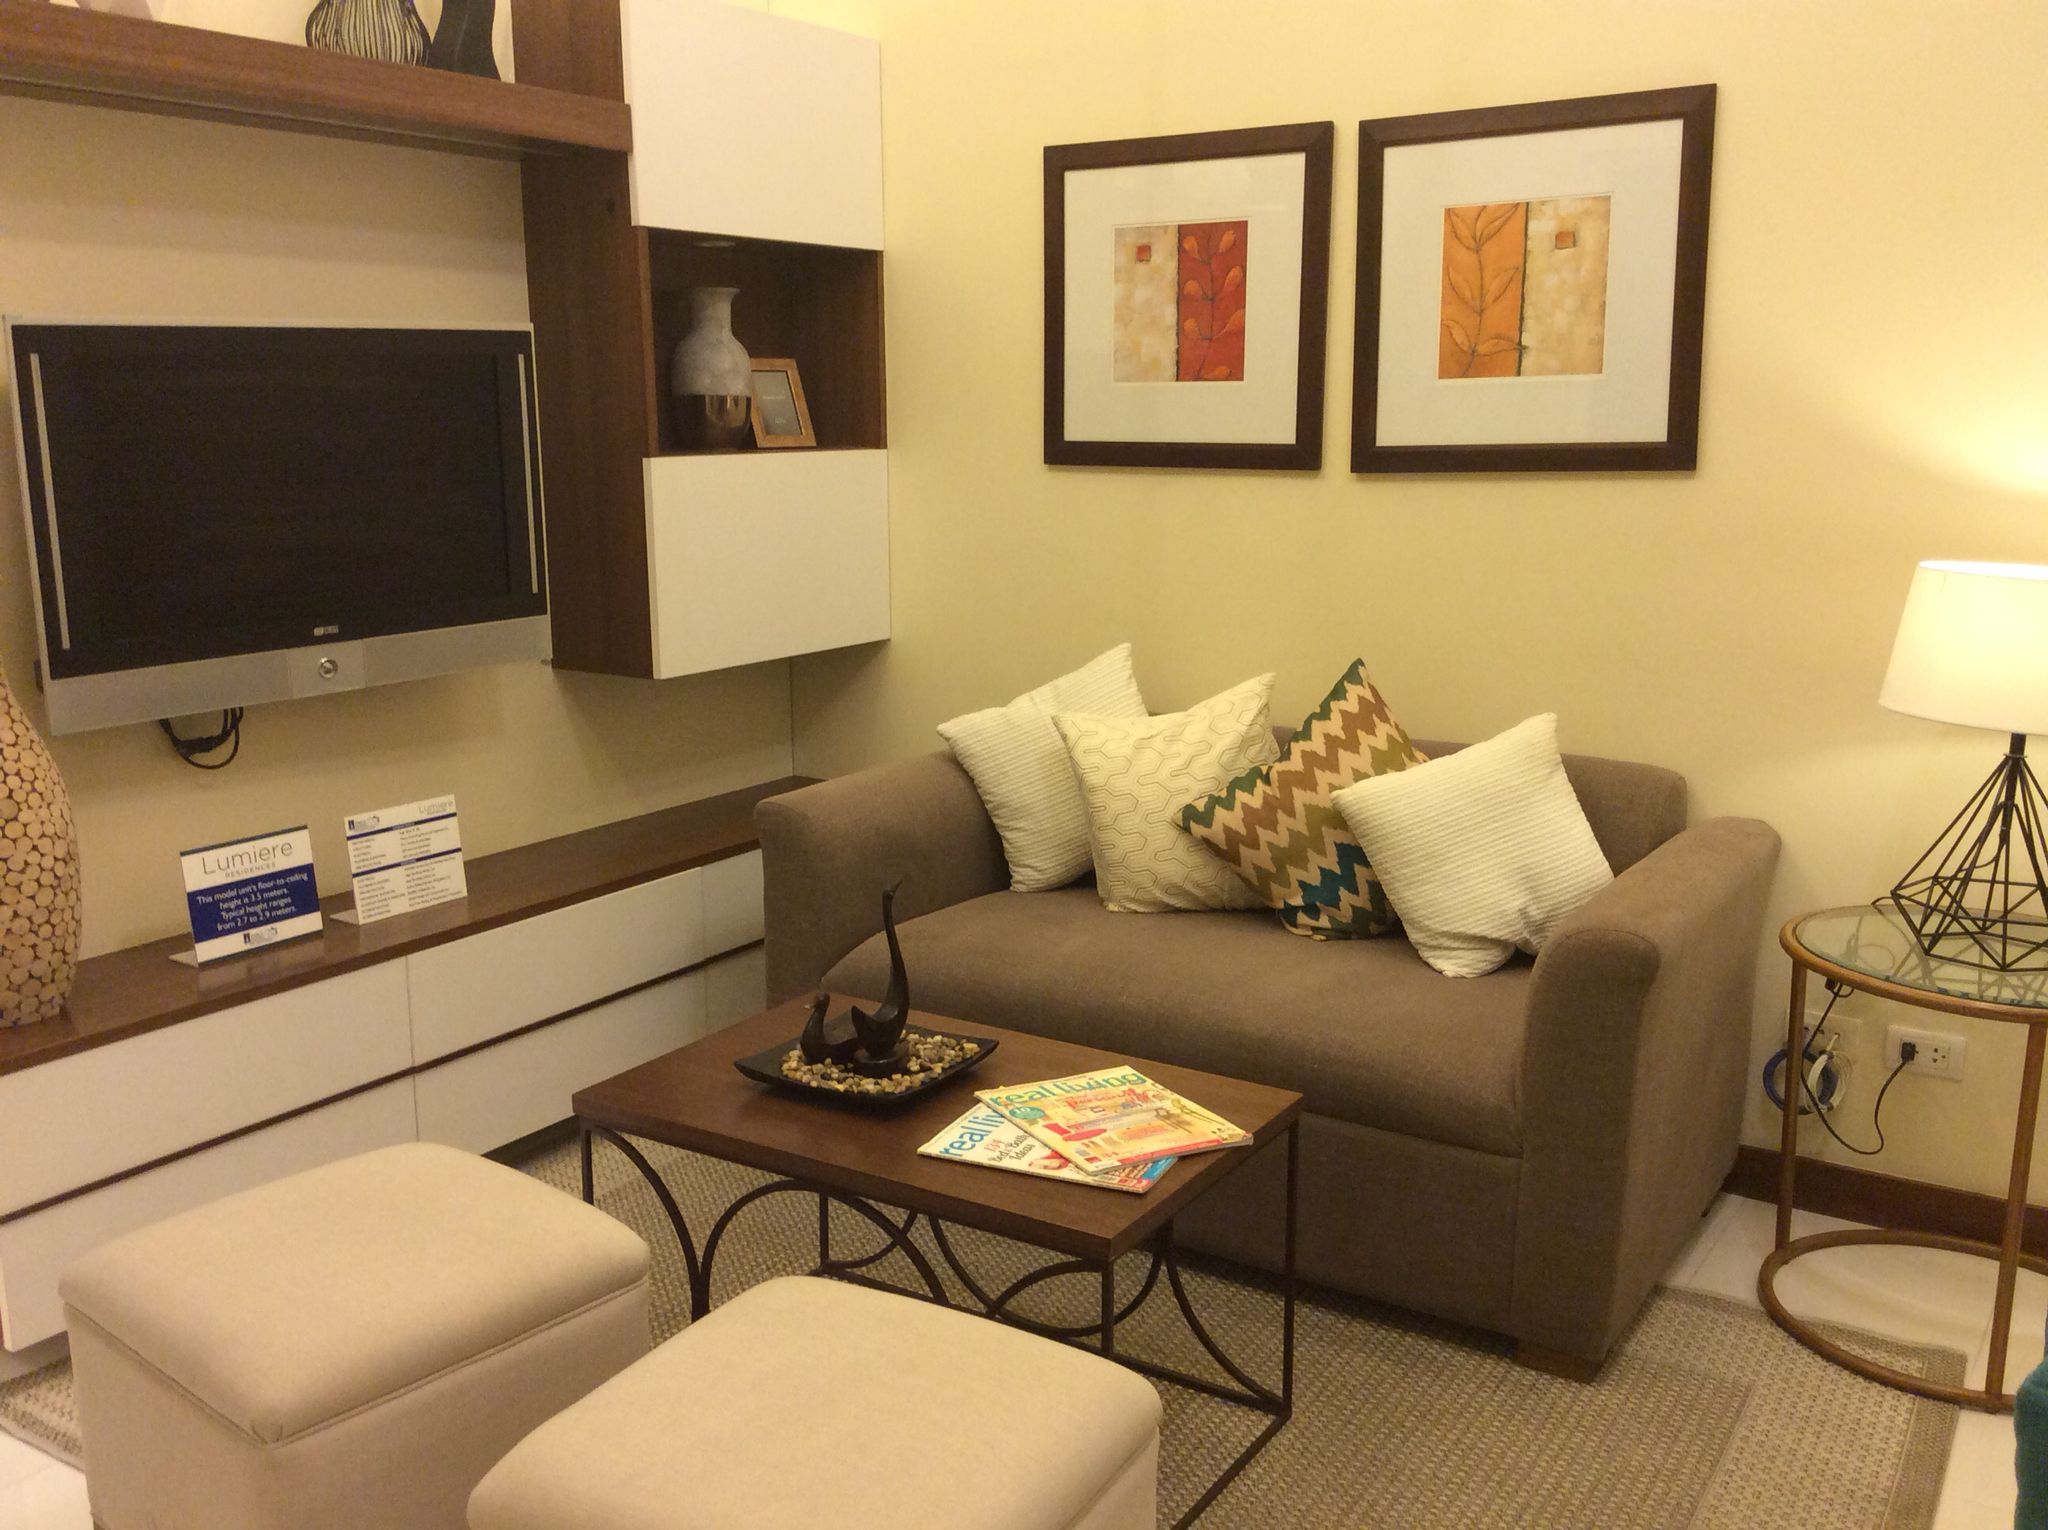 Cozy Living Room Dmci 2br Resort Inspired Condo Project For More